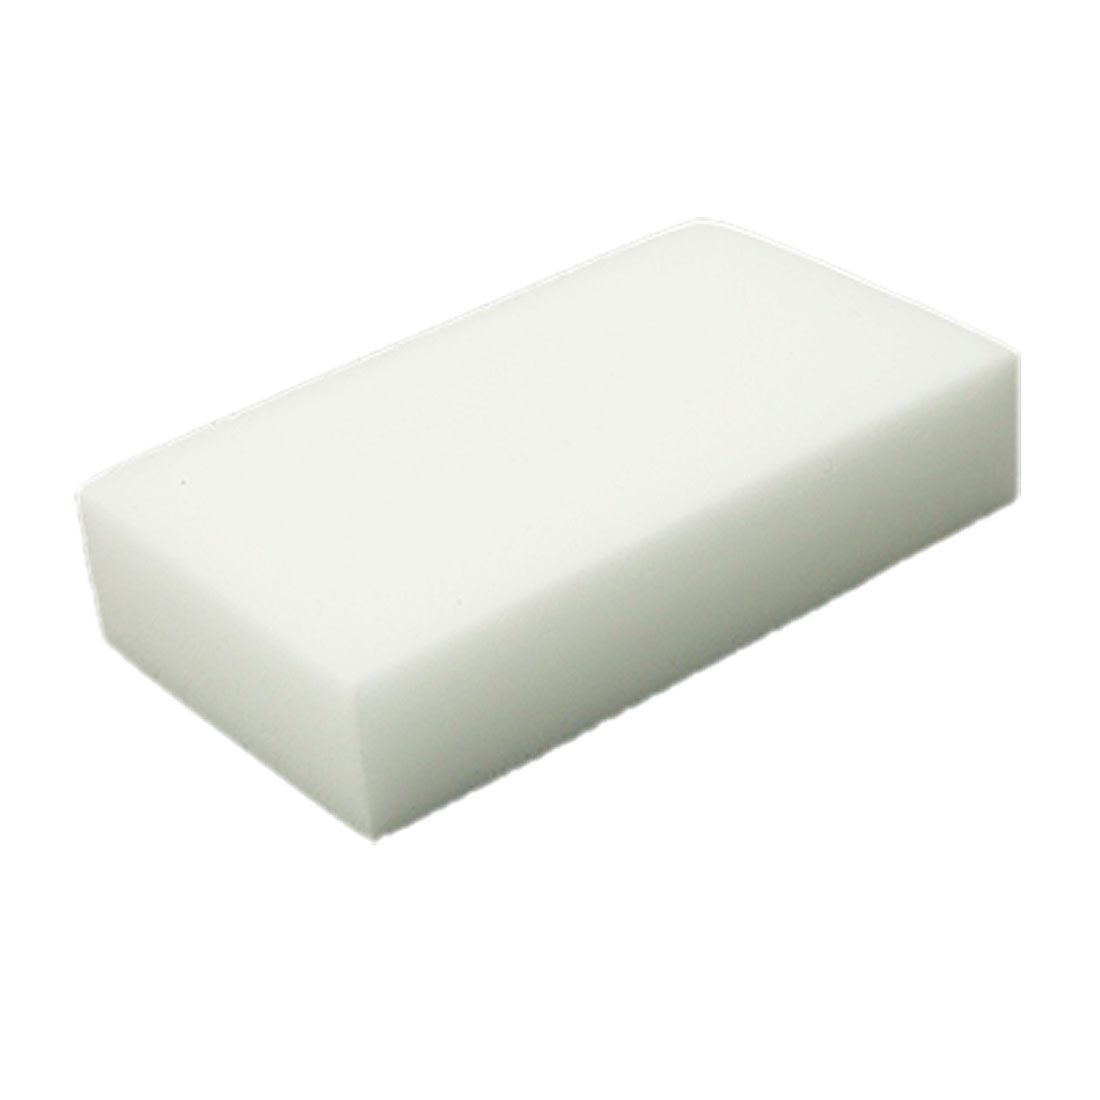 White Magic Wizard Car House Washing Sponge L125 x W70 x H30mm